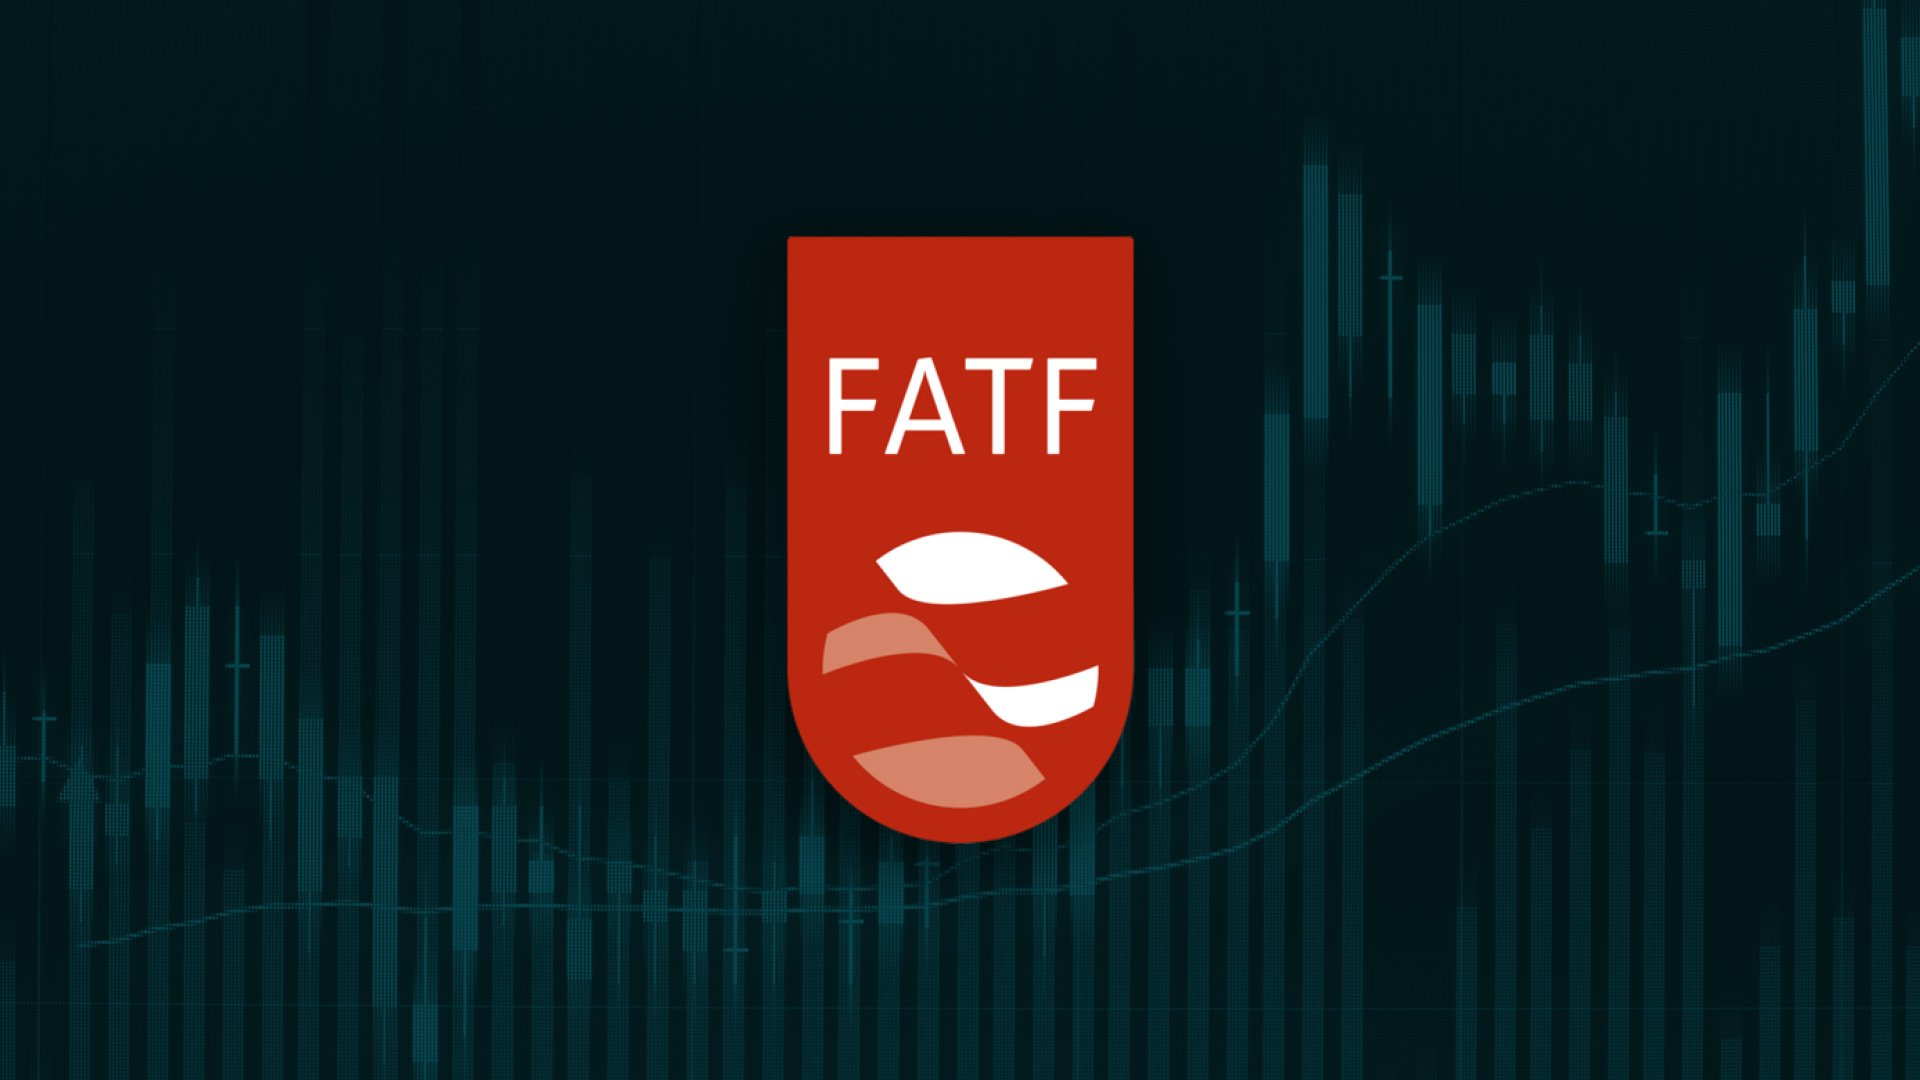 FATF has finalized its crypto guidance and plans release next week